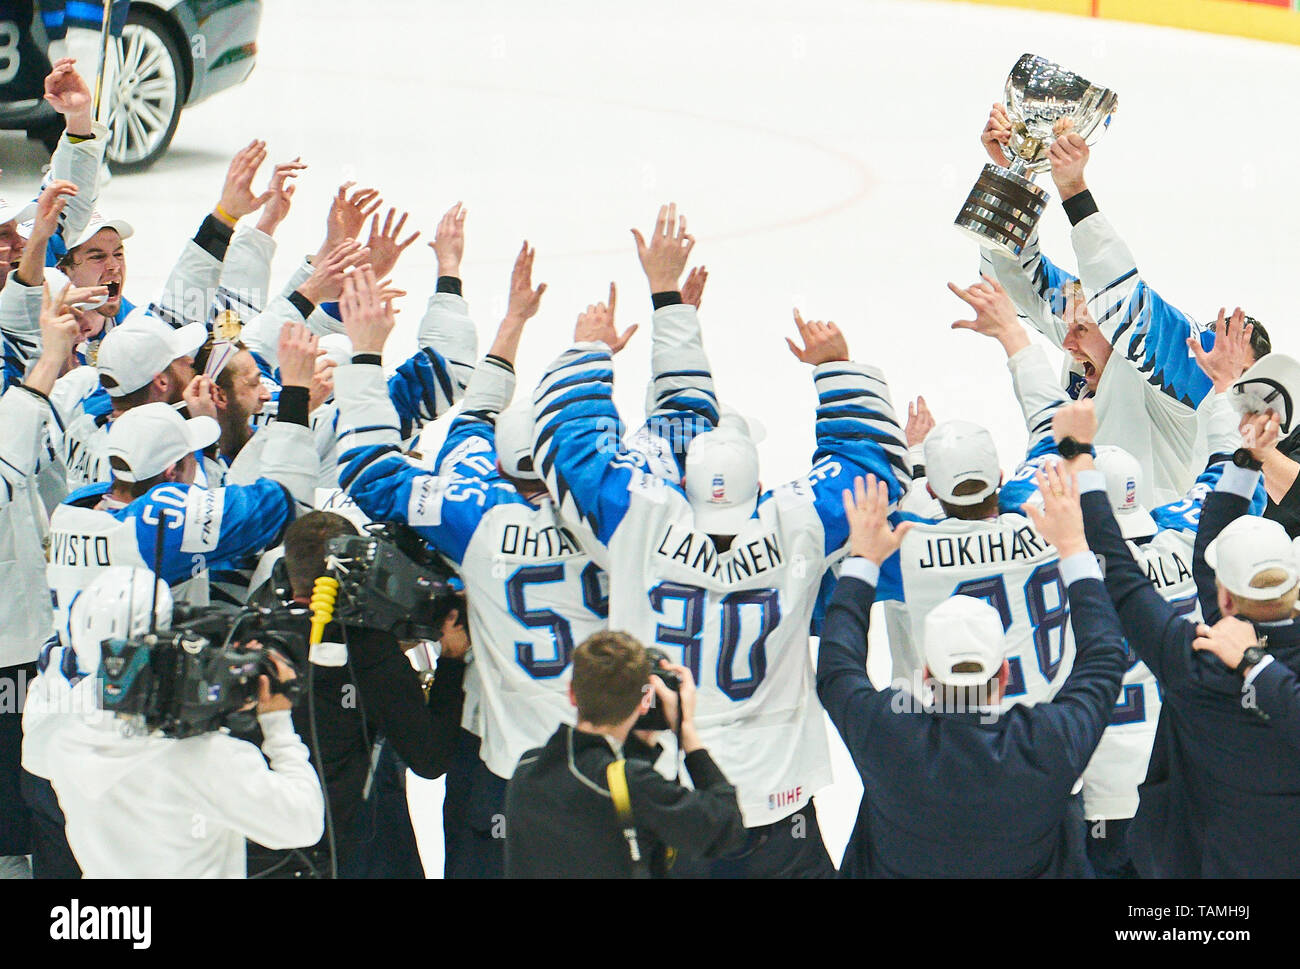 Bratislava, Slovakia. 26th May, 2019. Marko ANTTILA, FIN 12, Finland won the title and celebrate, Cheering, joy, emotions, celebrating, laughing, cheering, rejoice, tearing up the arms, clenching the fist, celebrate, celebration, Torjubel, CANADA - FINLAND 1-3 Kanada - Finnland FINAL IIHF ICE HOCKEY WORLD CHAMPIONSHIPS in Bratislava, Slovakia, Slowakei, May 26, 2019, Season 2018/2019, Credit: Peter Schatz/Alamy Live News - Stock Image